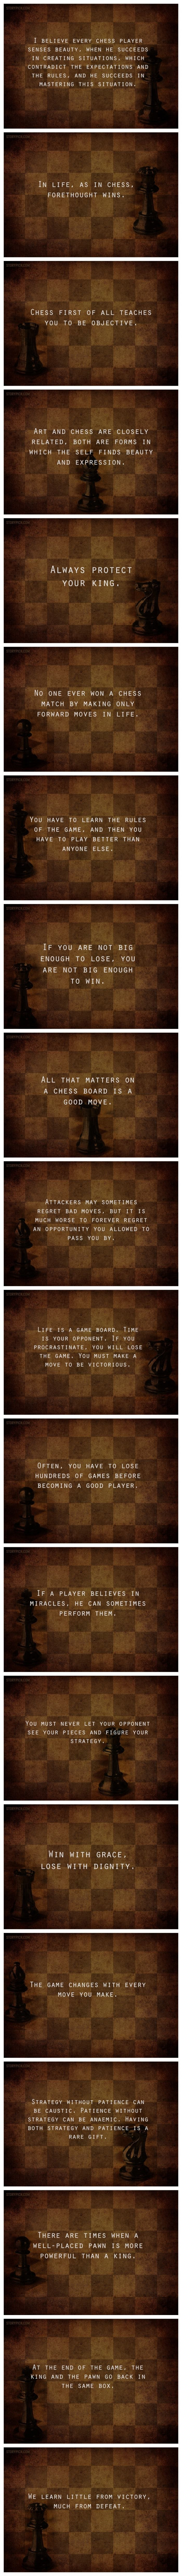 Interesting facts chess can teach you